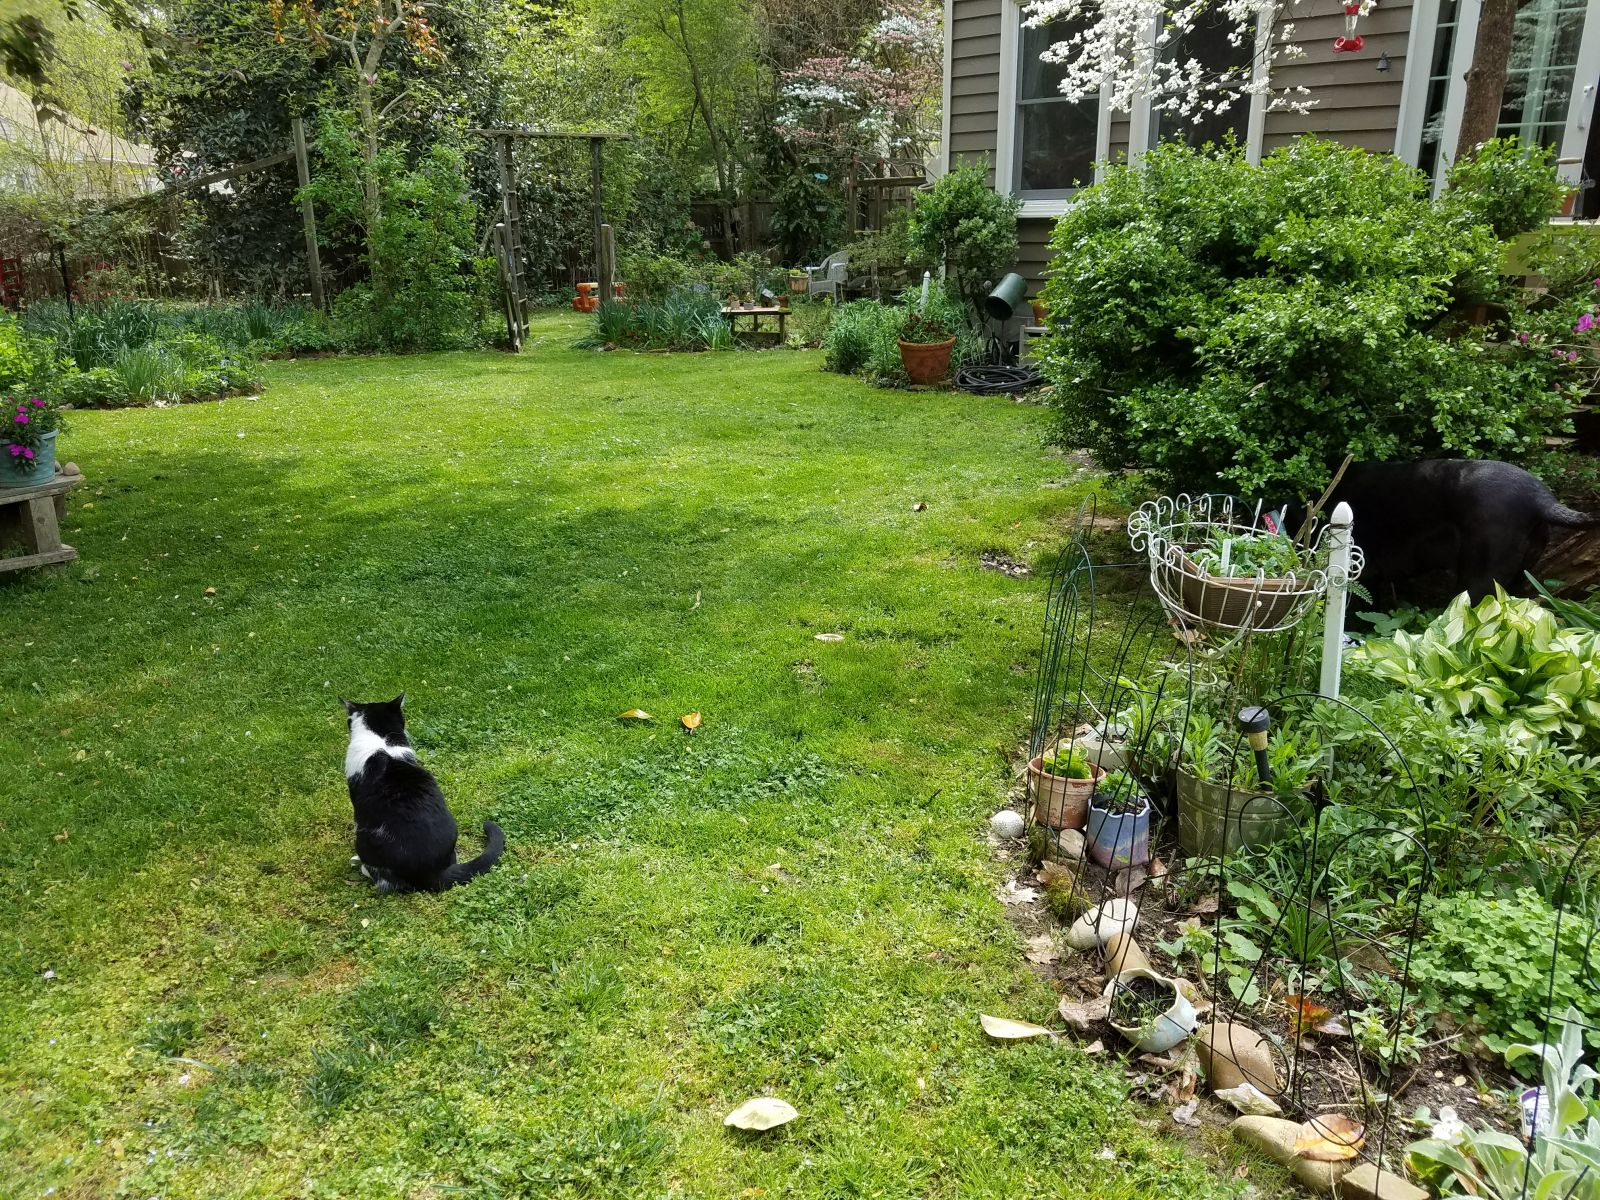 a garden with a black and white cat lounging